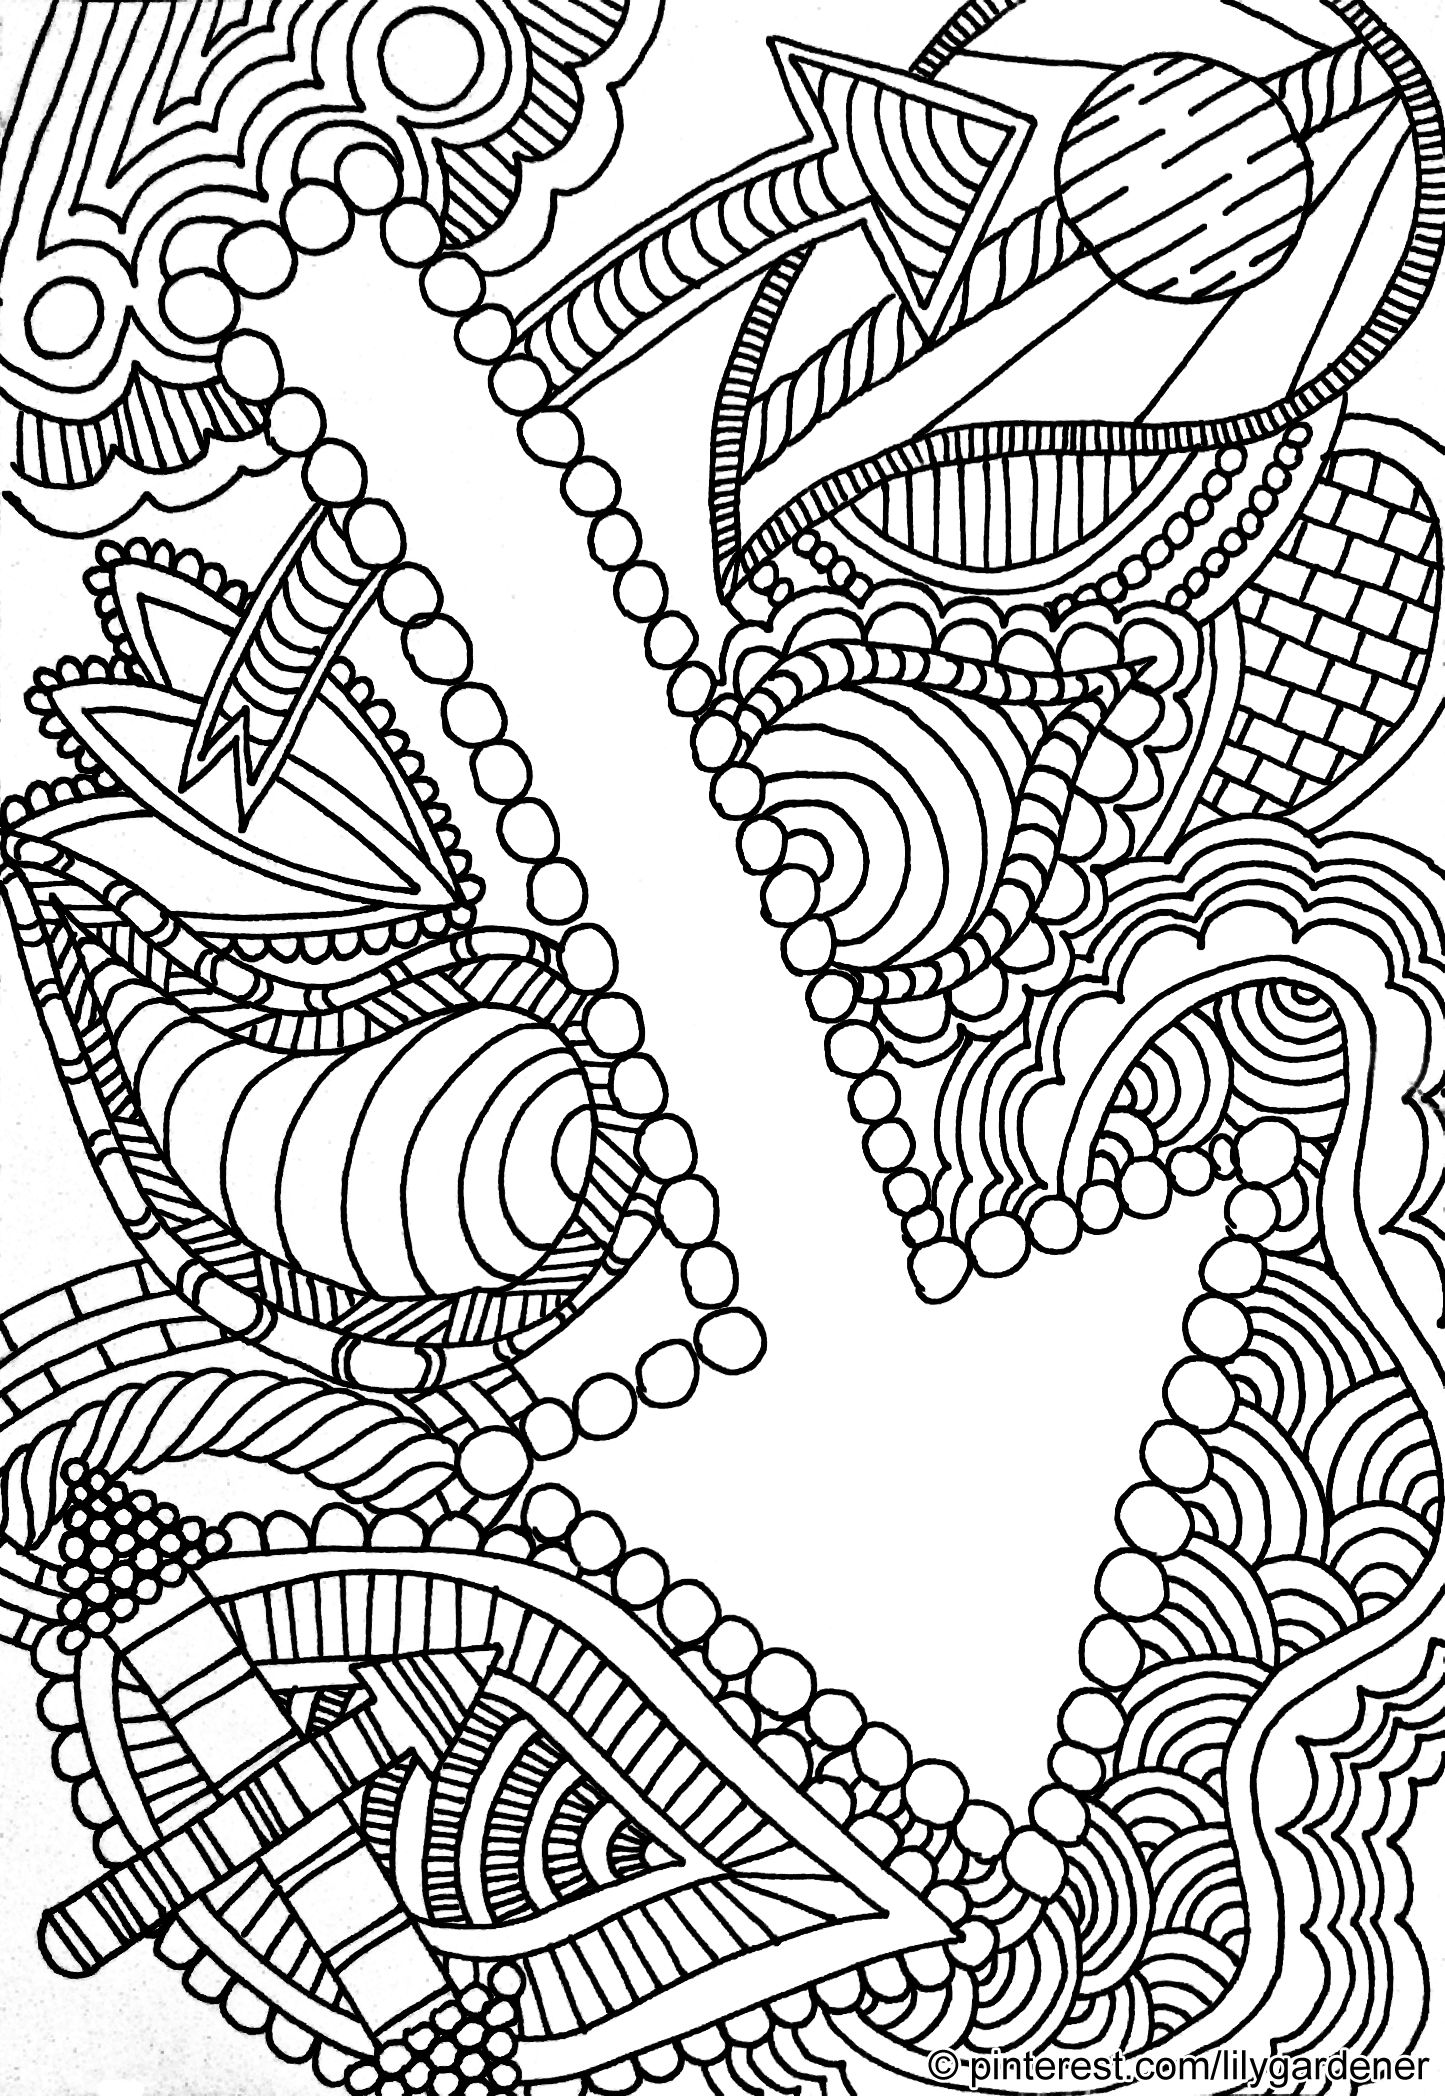 coloring adults avocado coloring page at getcoloringscom free printable adults coloring